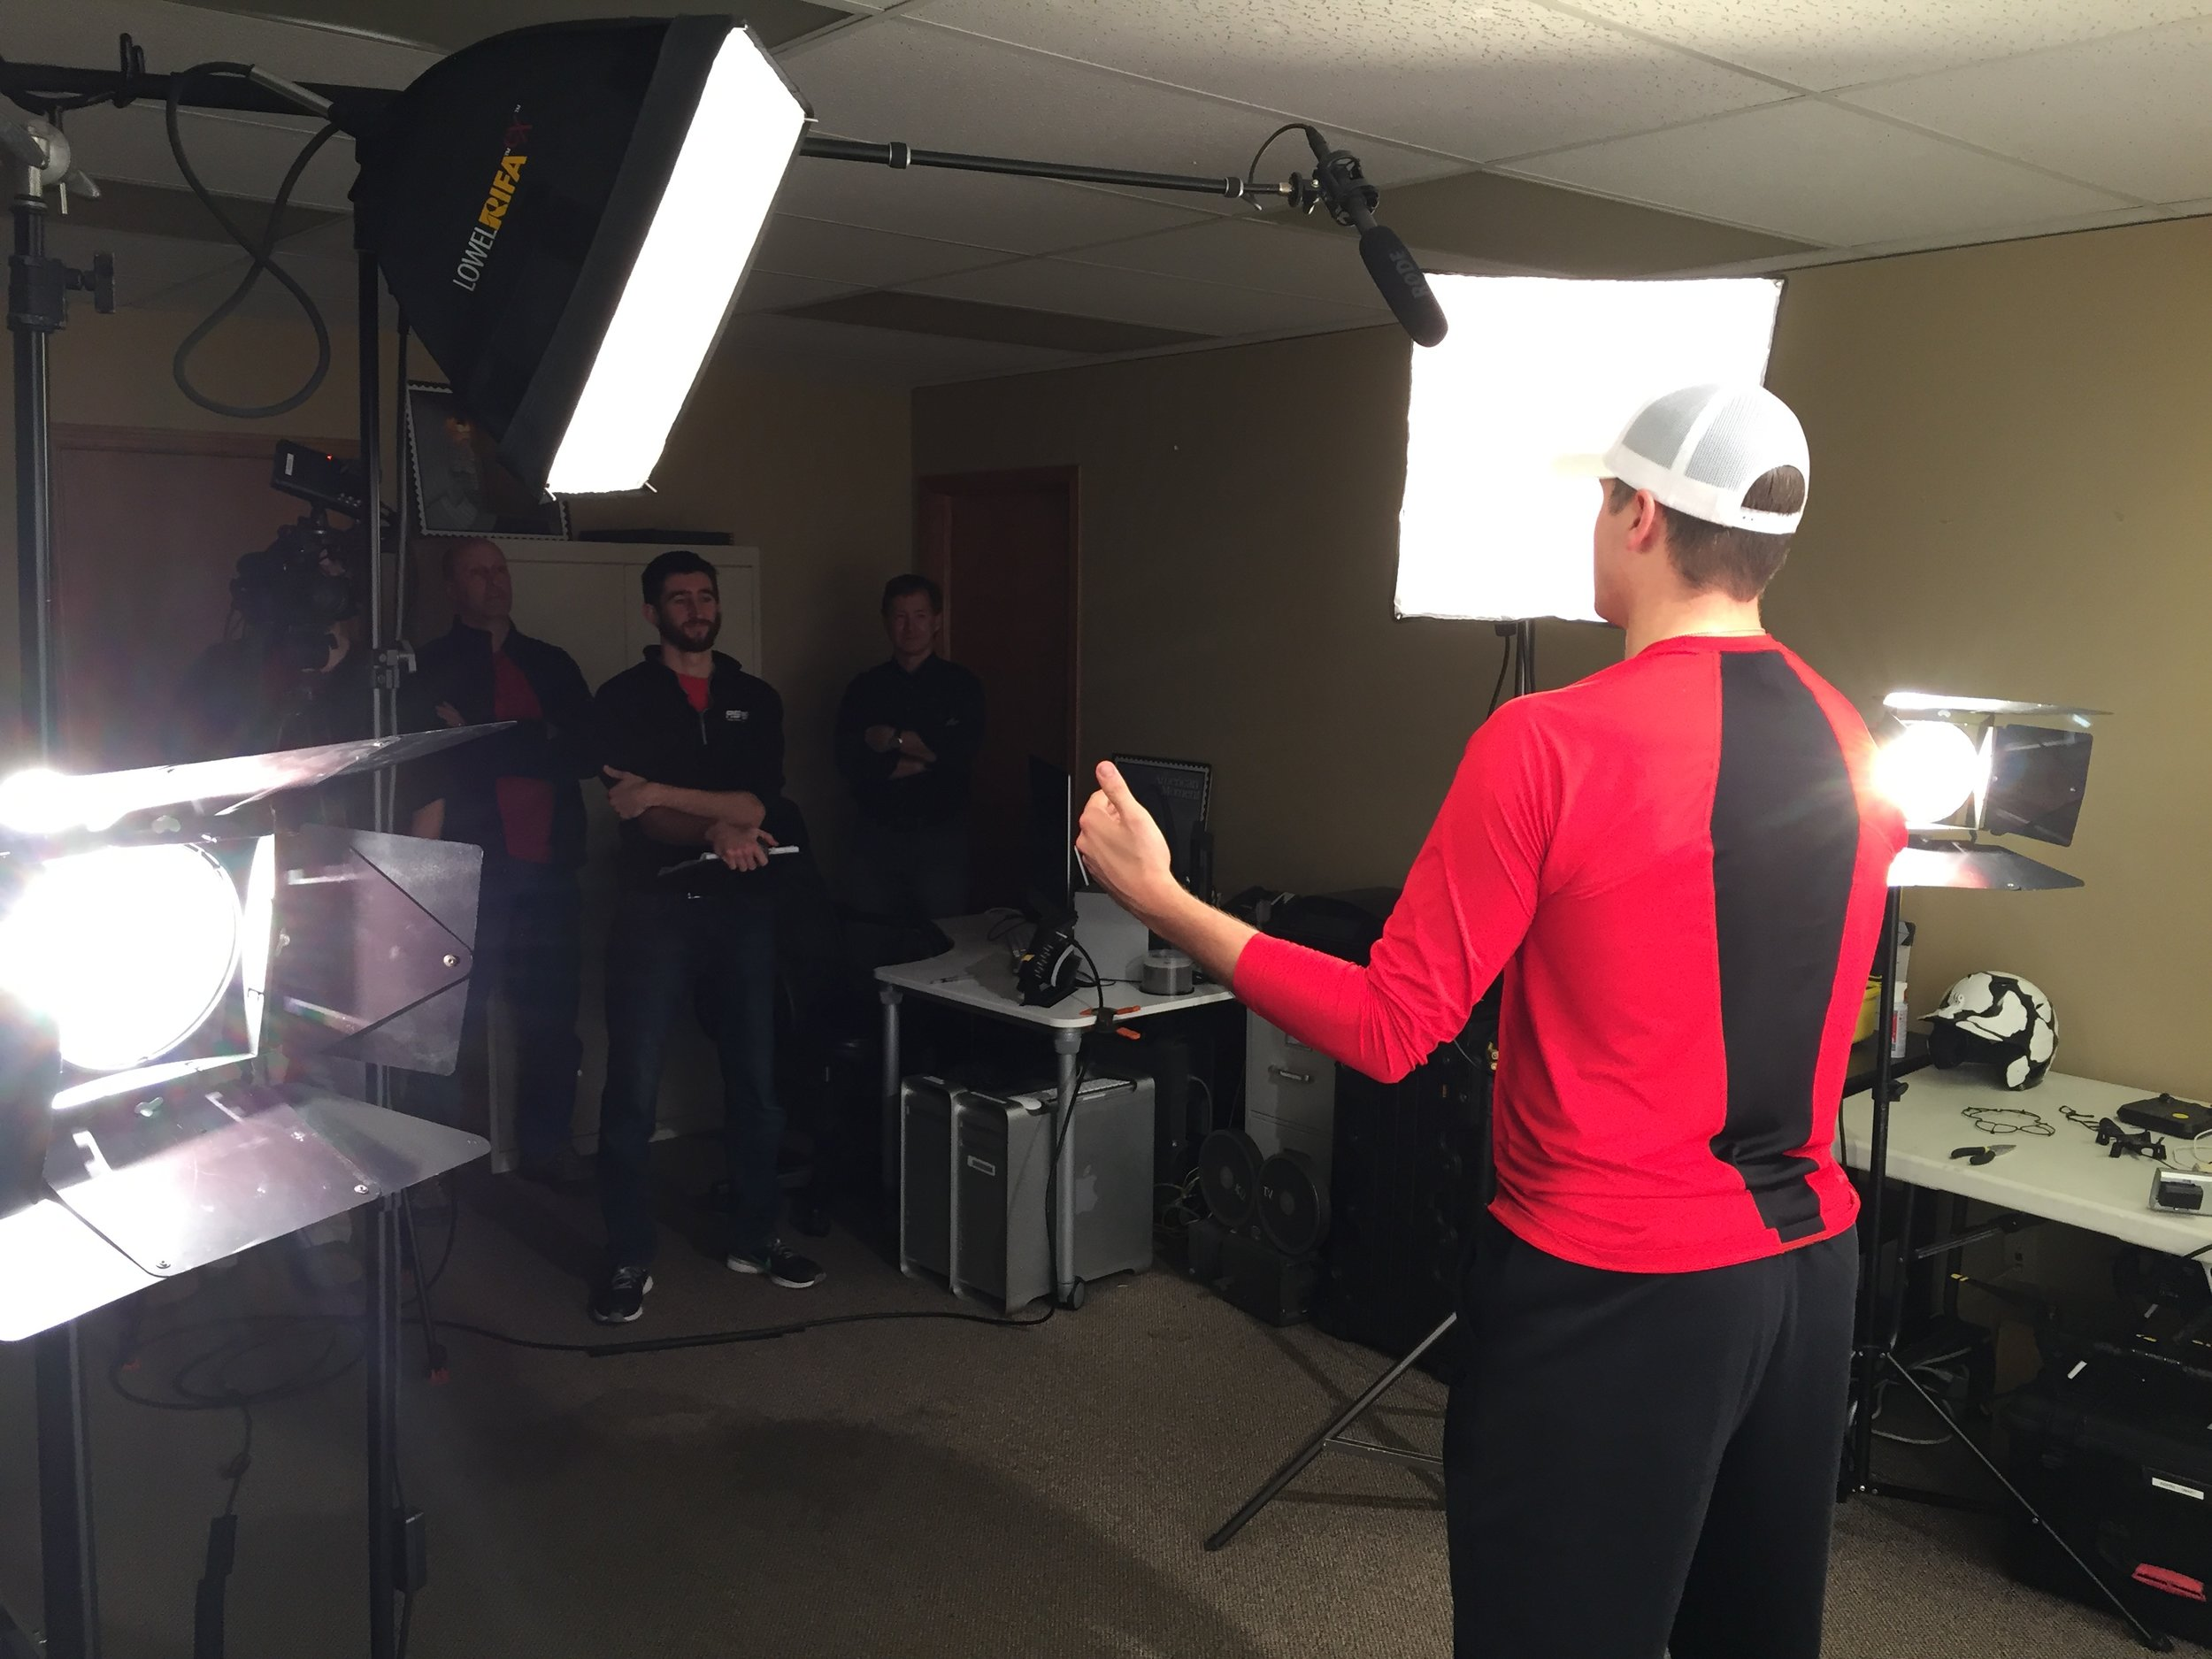 Sometimes we get to work with stars on the field, like Mike Morin of the Los Angeles Angels, thanks to our partnered company All Star Video Sports. Just another part of our job that makes work, not so much work.